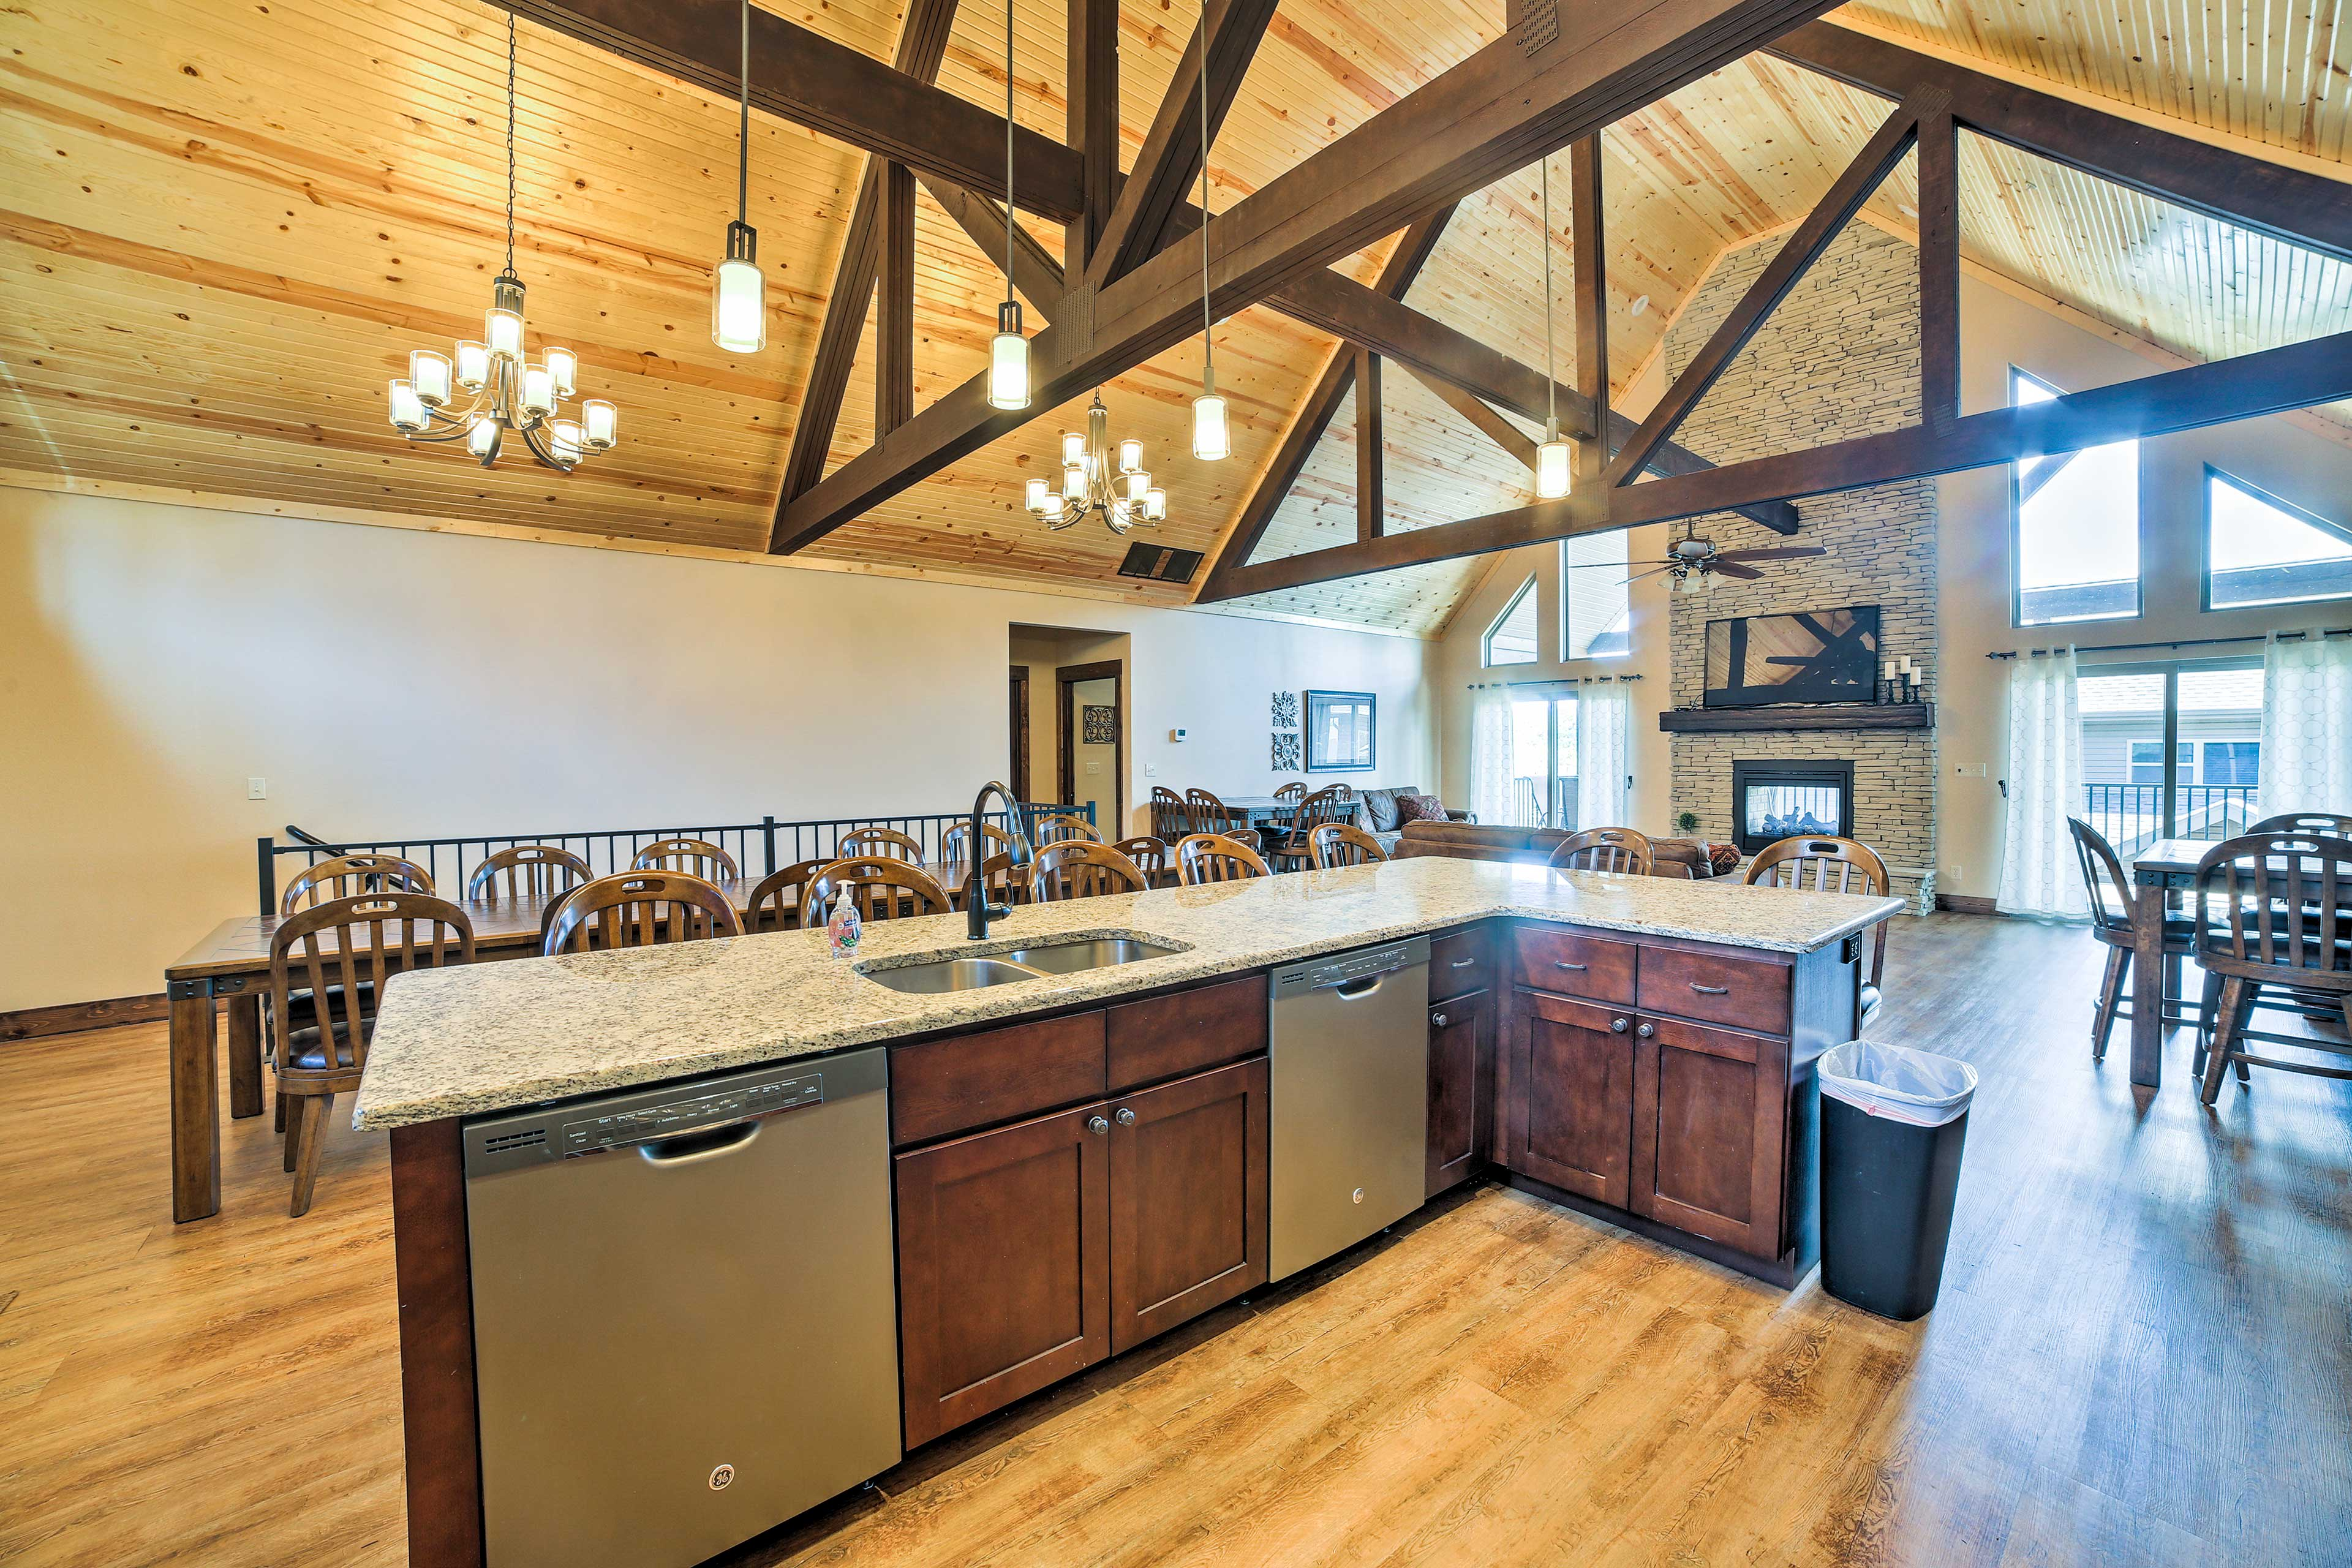 Whip up home-cooked cuisine in this state of the art kitchen!